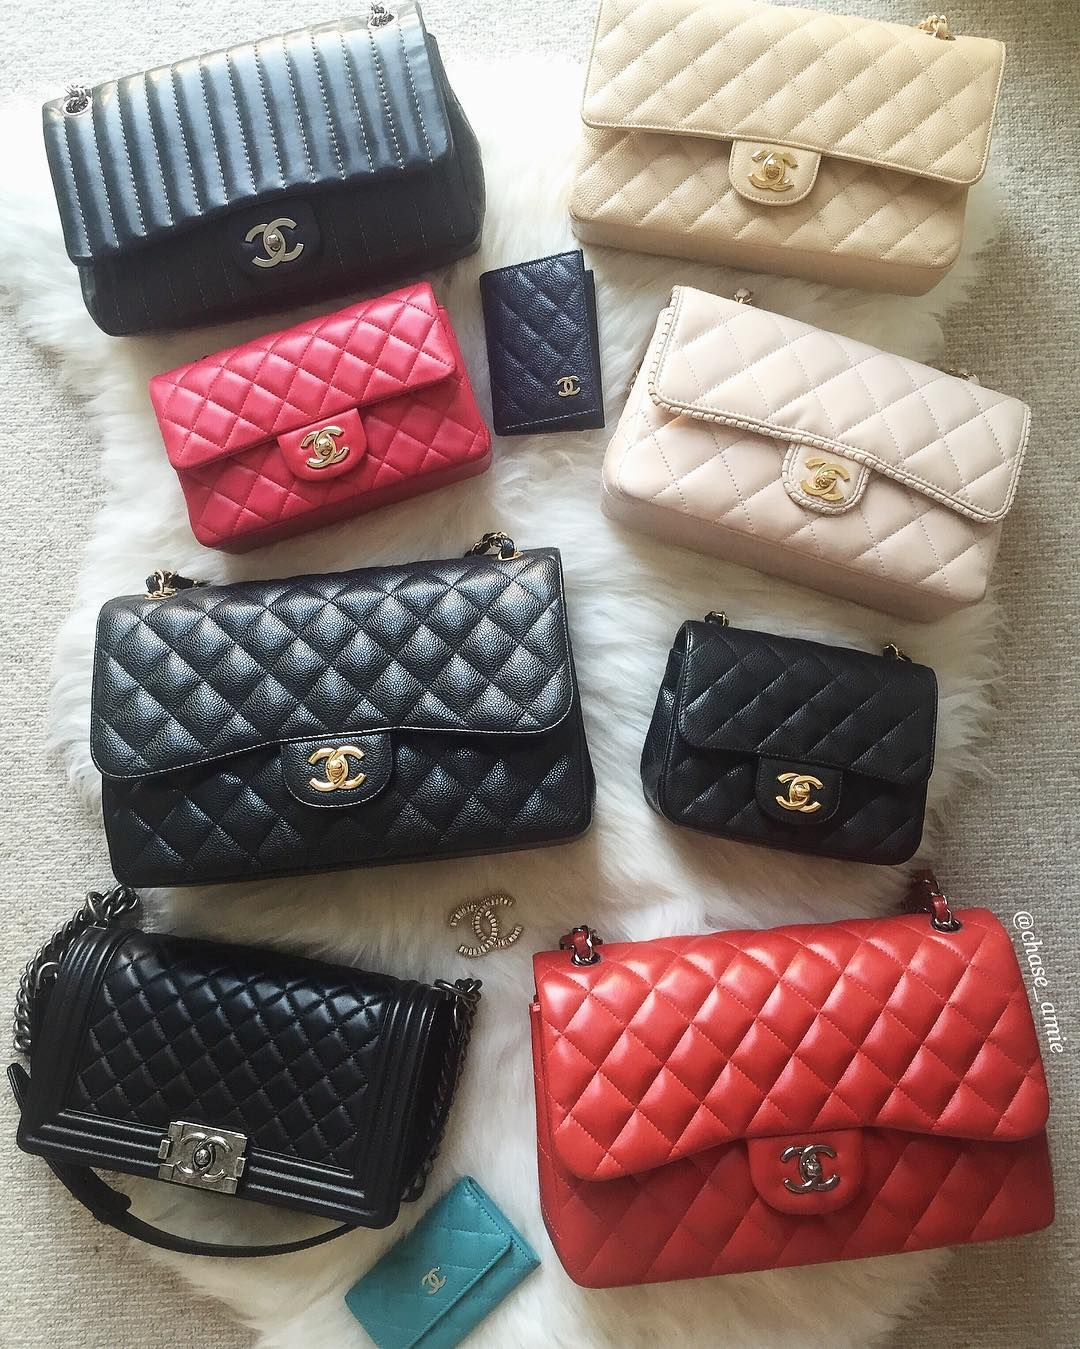 3ecf04df5652 Bag and purse lover